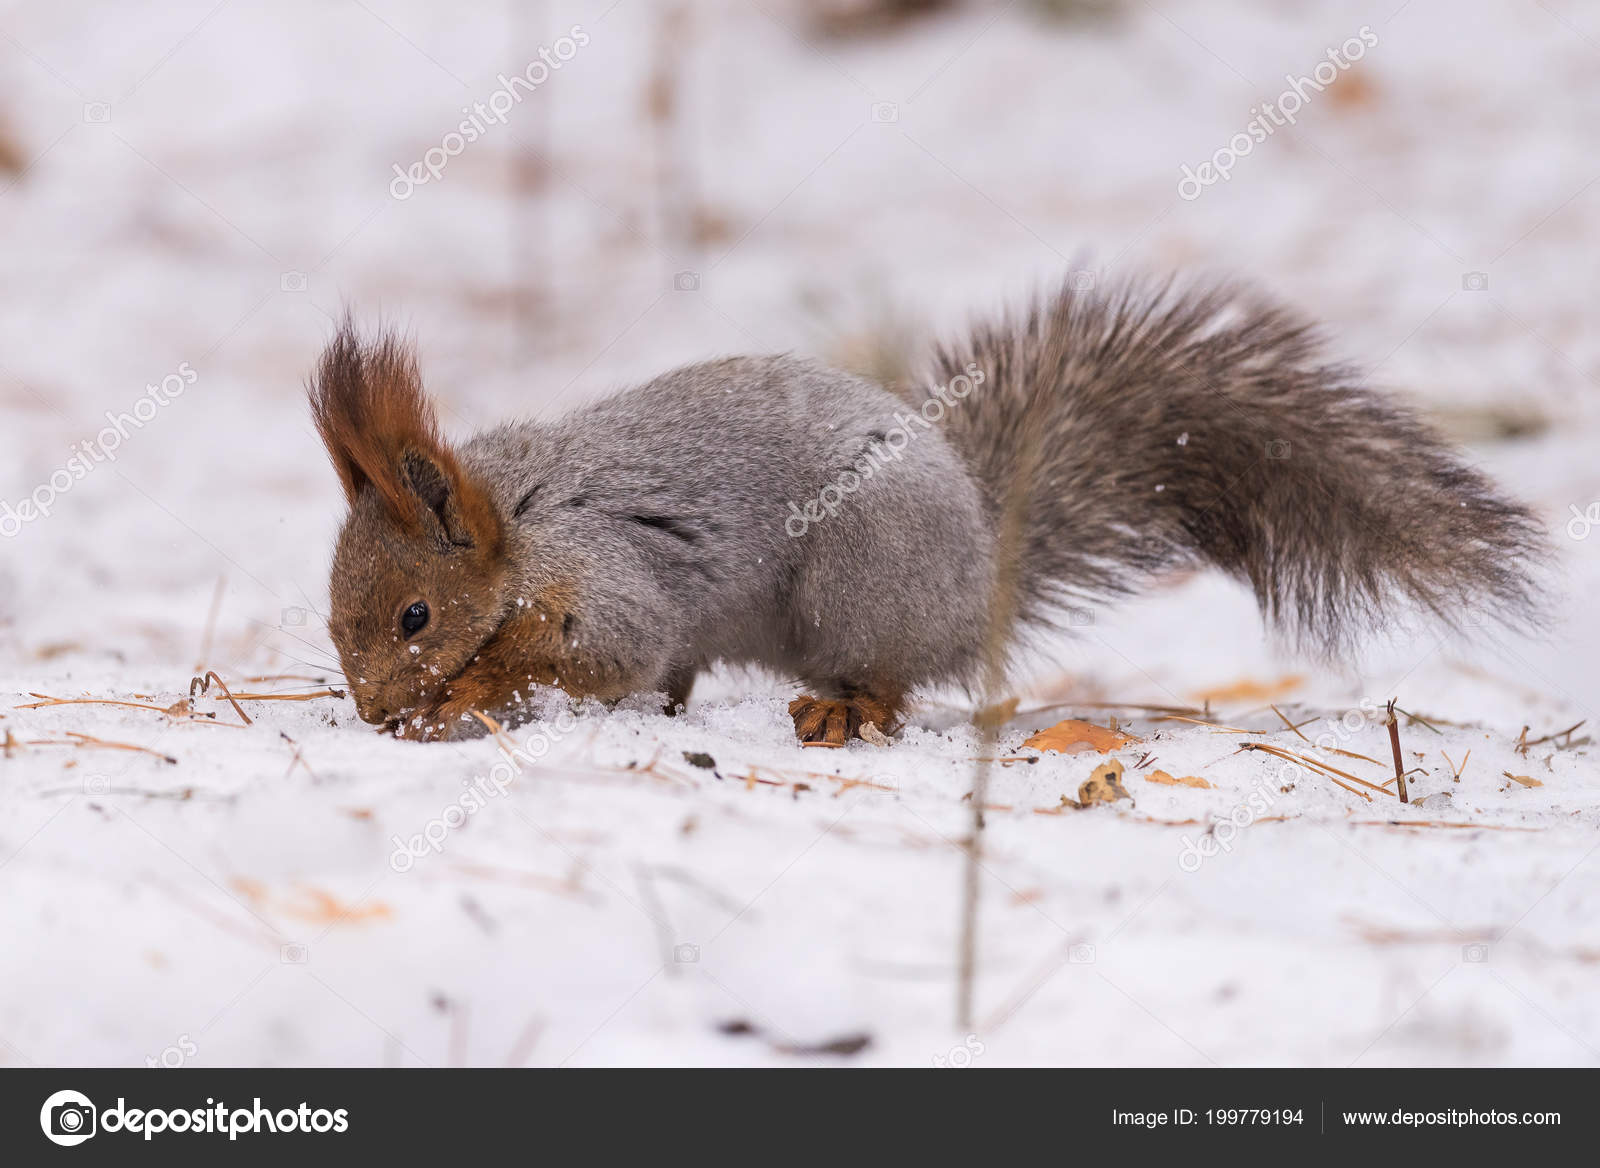 https://st4.depositphotos.com/2792031/19977/i/1600/depositphotos_199779194-stock-photo-squirrel-searches-food-snowy-forest.jpg